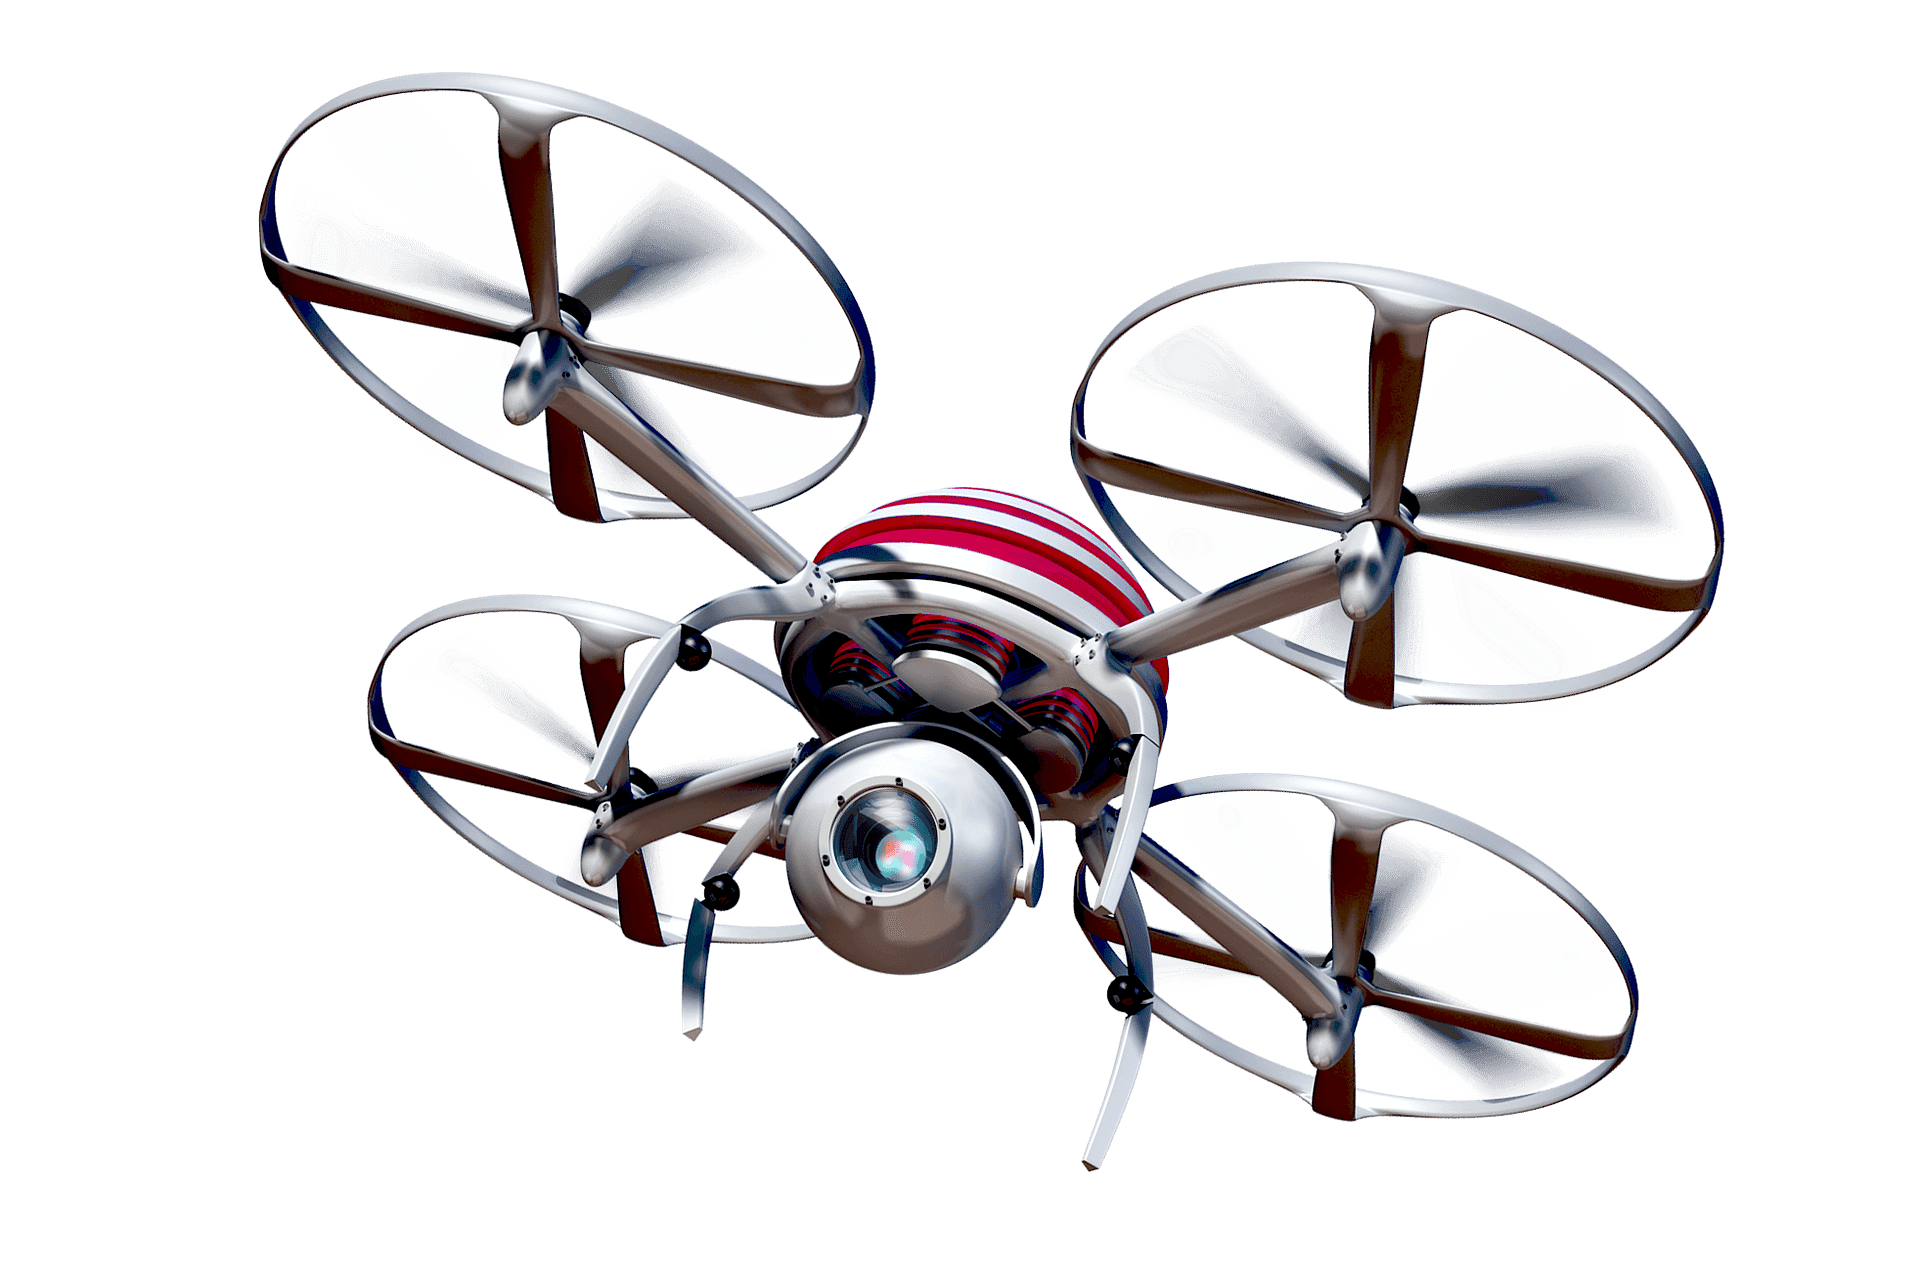 content/en-us/images/repository/isc/2020/a-spy-drone-with-large-camera-lens.png